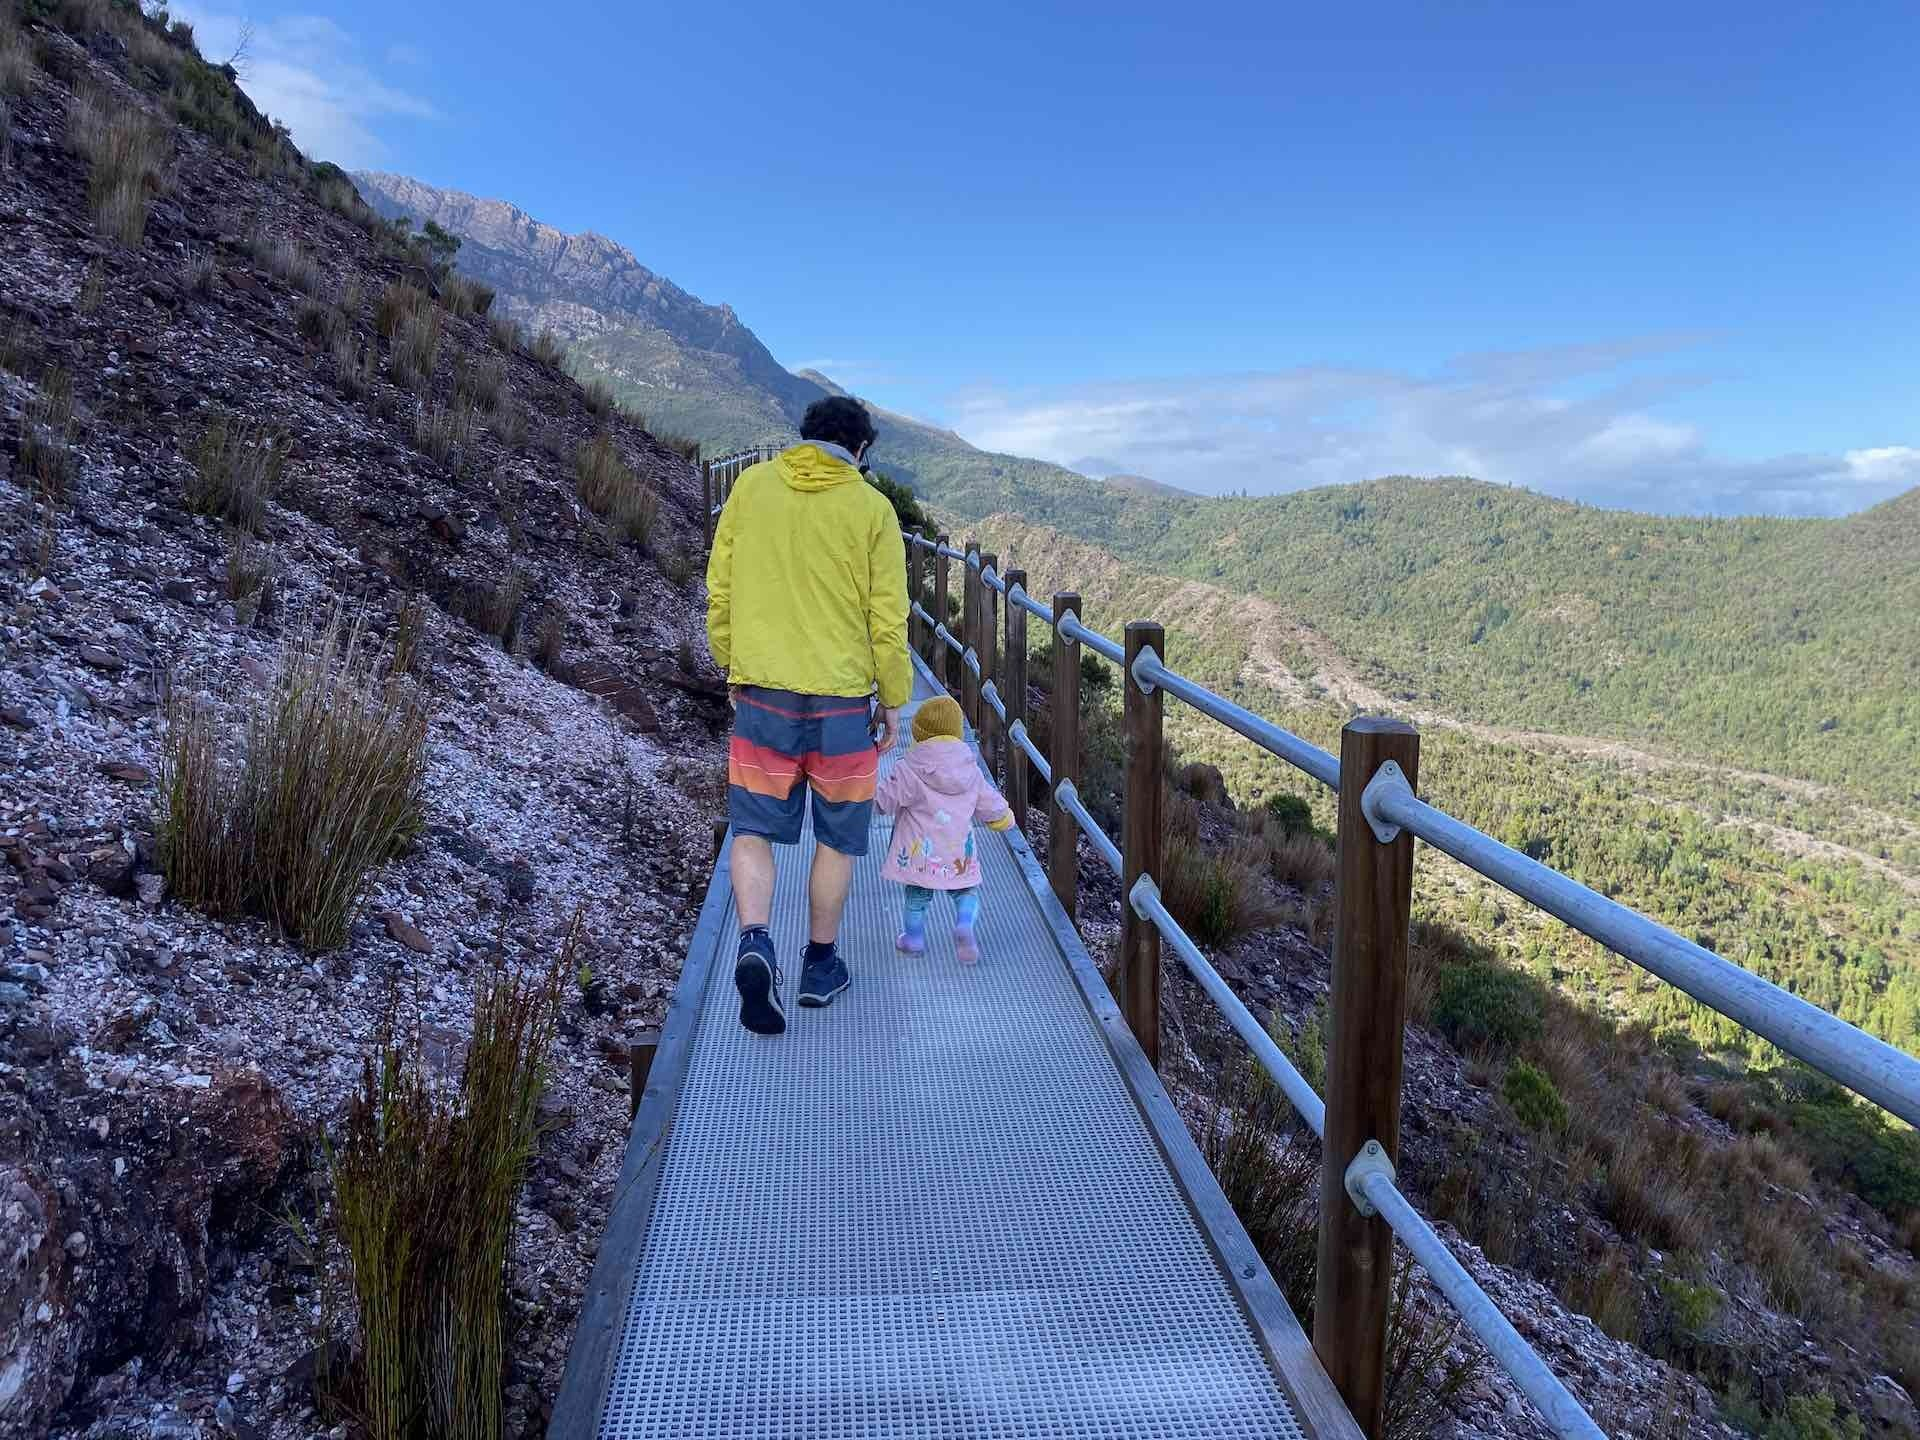 How To Travel Tasmania With Your Adventure Family - Sarah Tayler, Tasmania, Queenstown, Track, Family, Dad